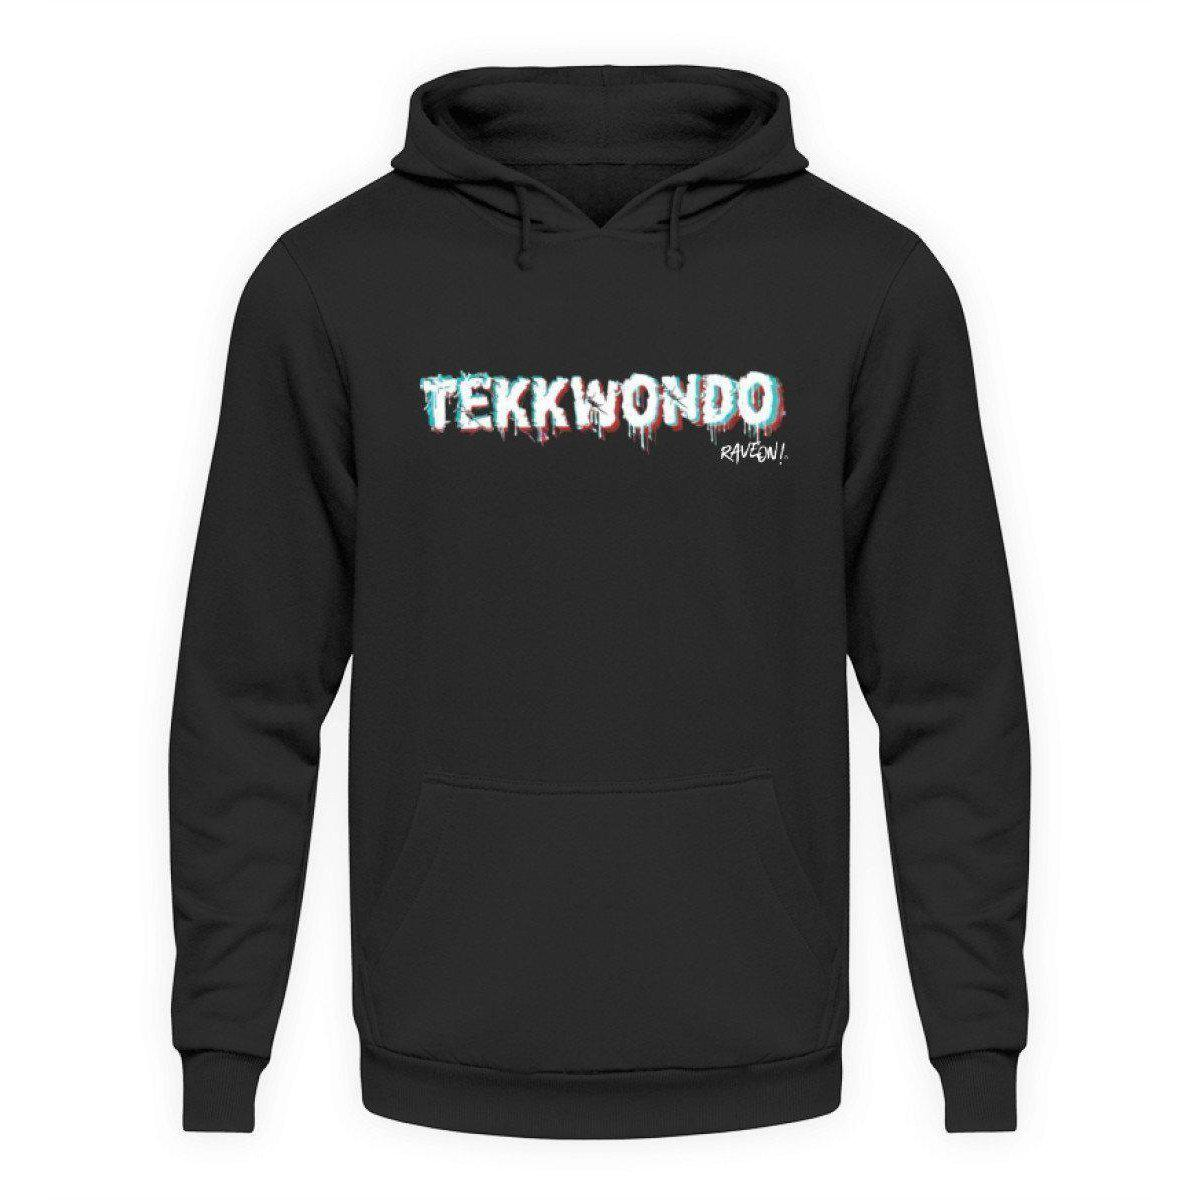 TEKKWONDO by Rave On!® - Unisex Kapuzenpullover Hoodie Unisex Hoodie Jet Black / L - Rave On!® der Club & Techno Szene Shop für Coole Junge Mode Streetwear Style & Fashion Outfits + Sexy Festival 420 Stuff